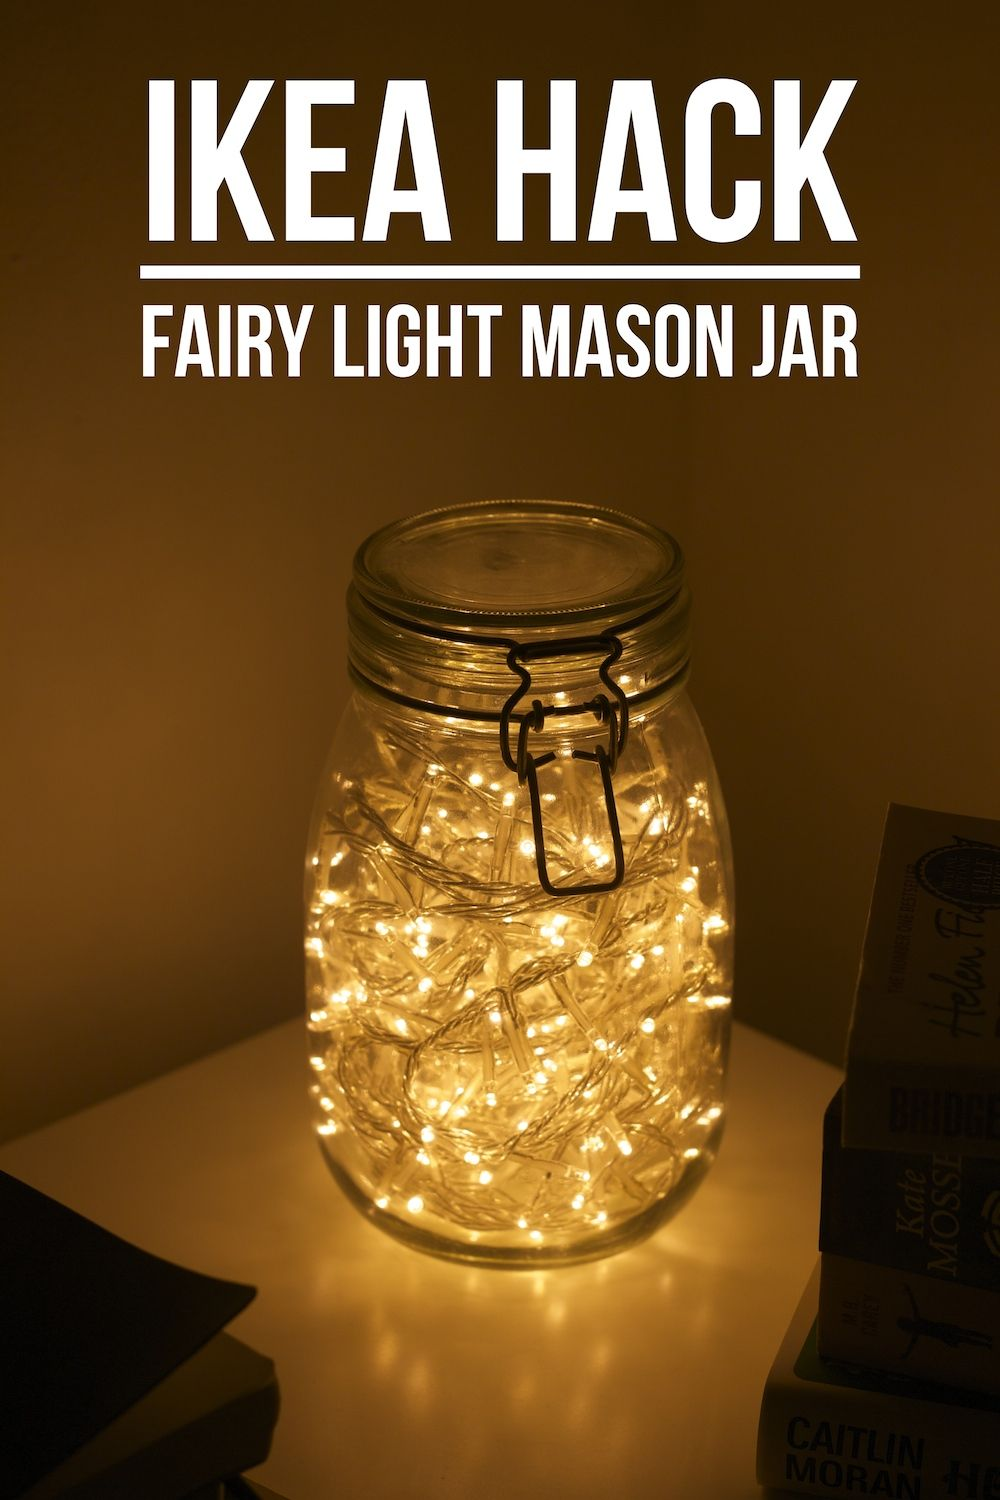 Daydream In Blue Uk Lifestyle Blog Ikea Hack Fairy Light Mason Jar Mason Jar Lighting Mason Jars Diy Room Decor